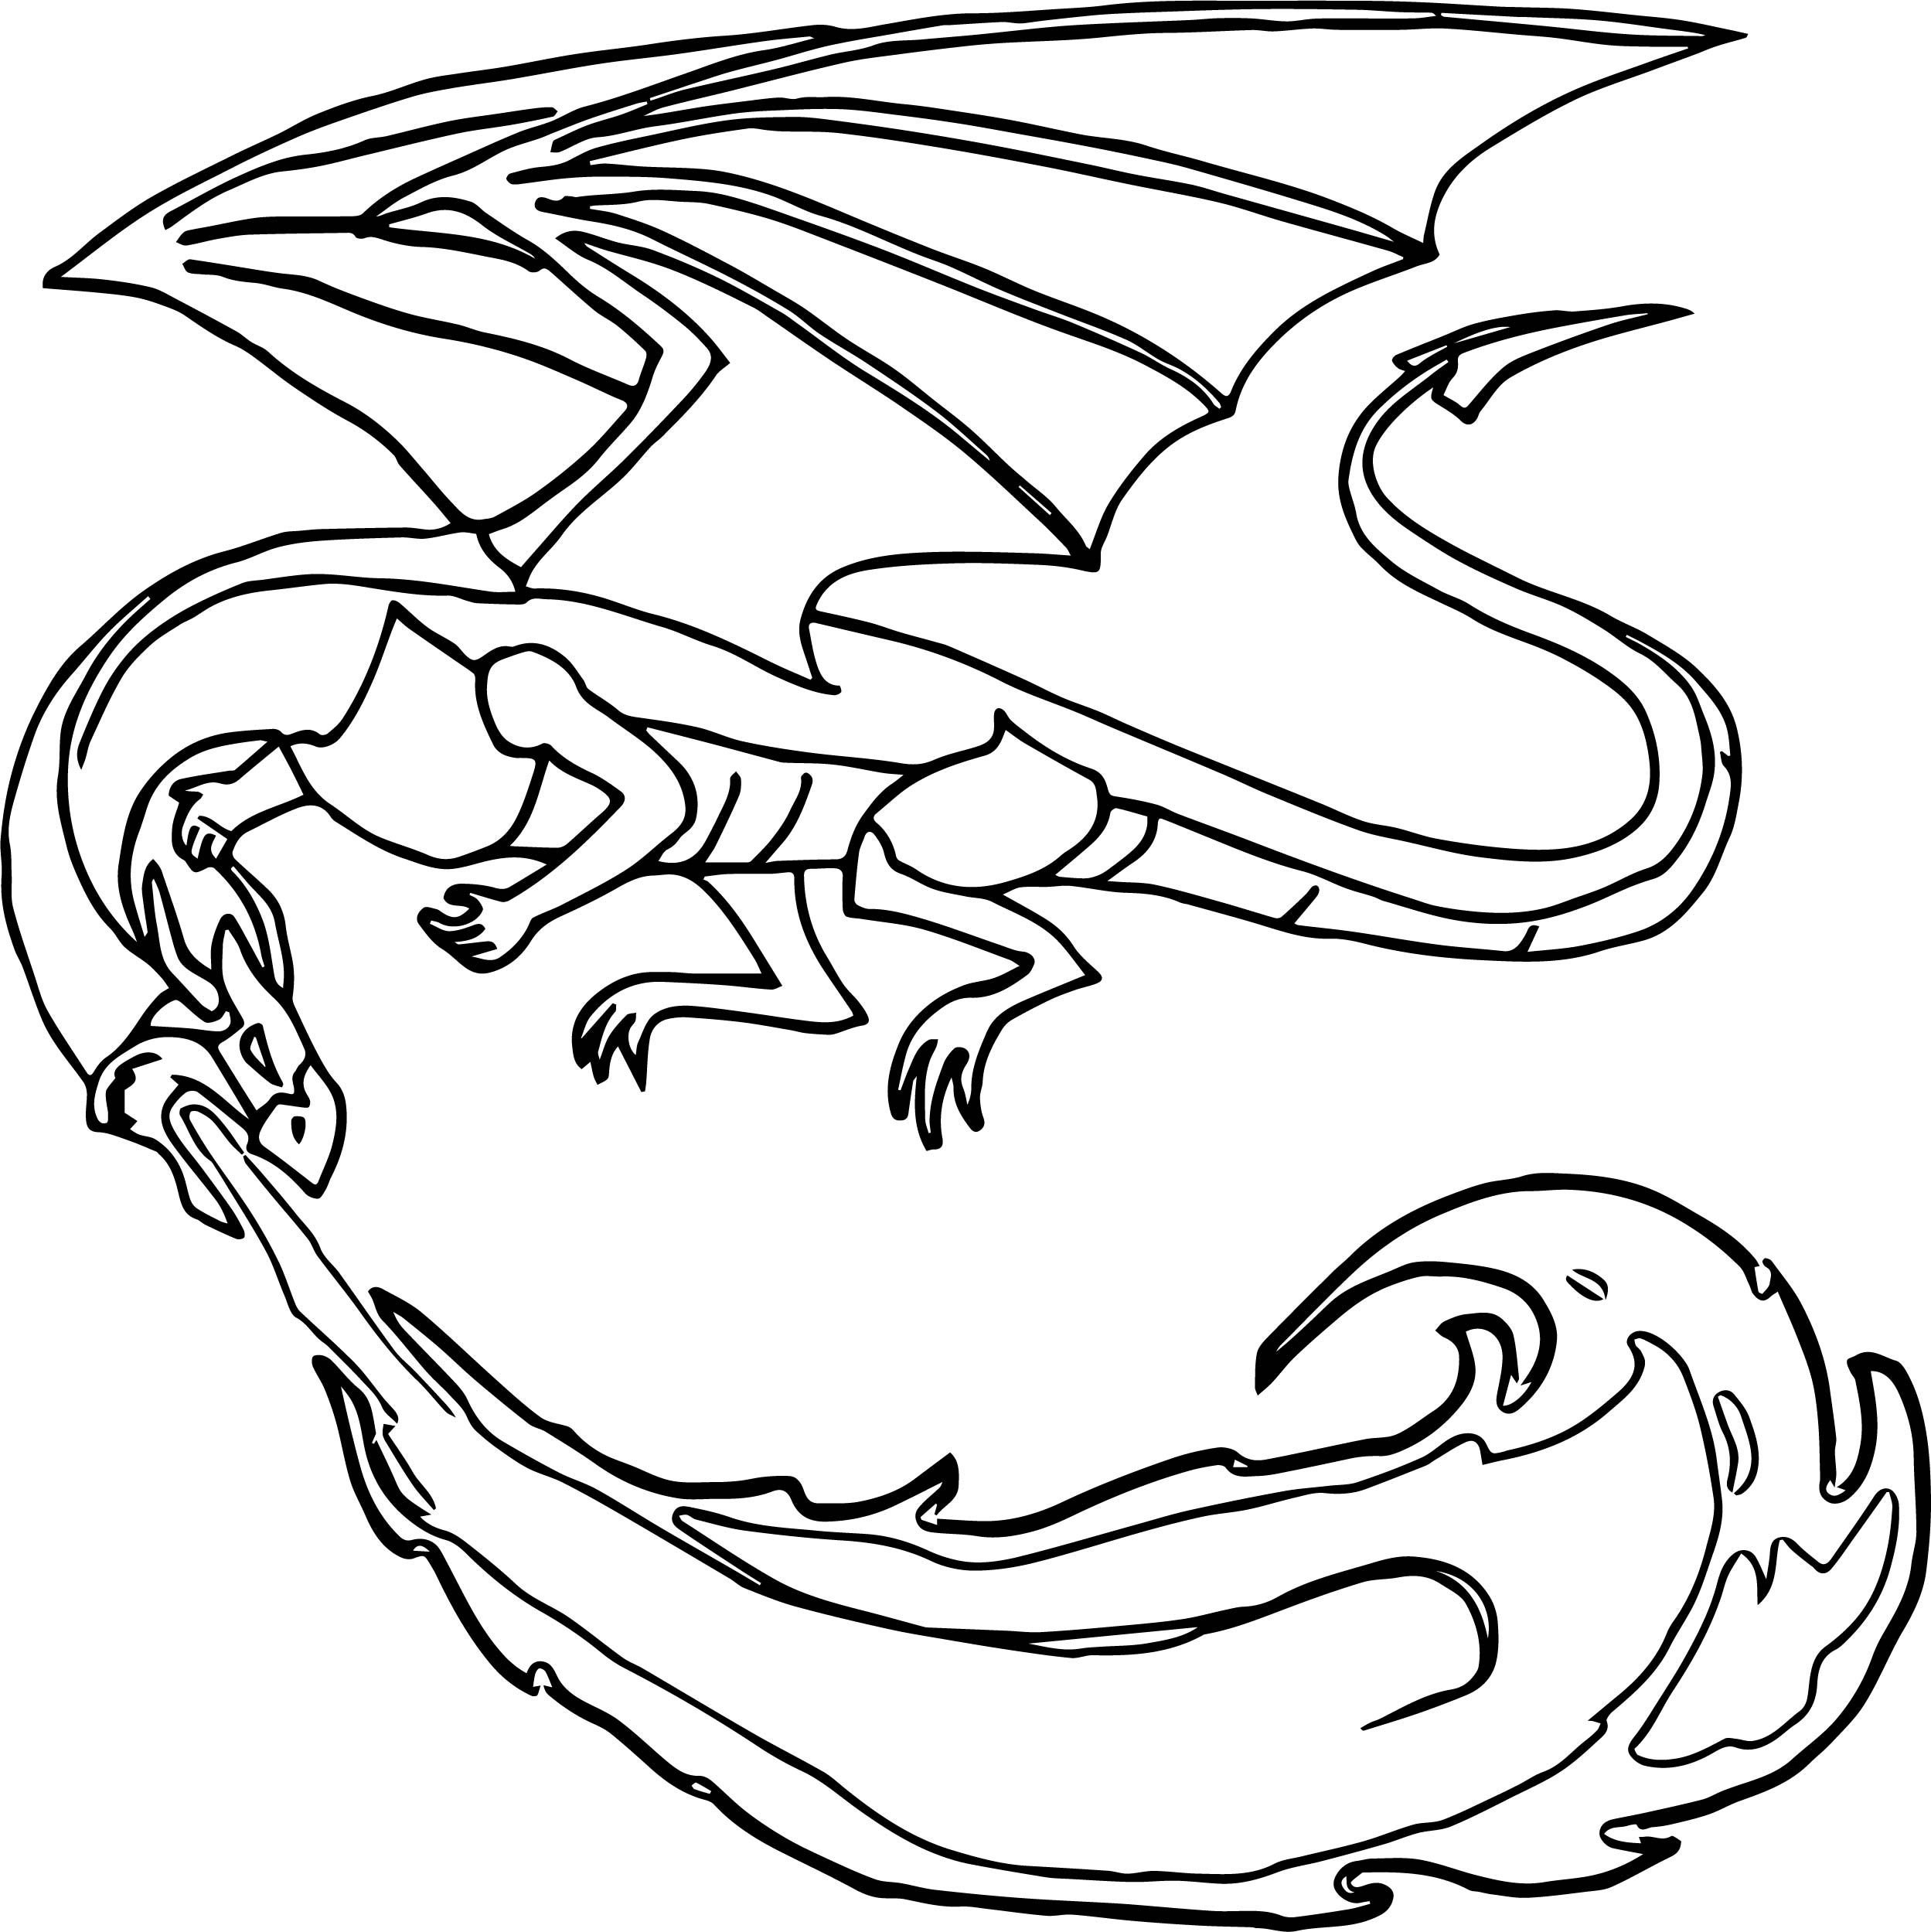 Awesome Dragon Fire Coloring Page Animales